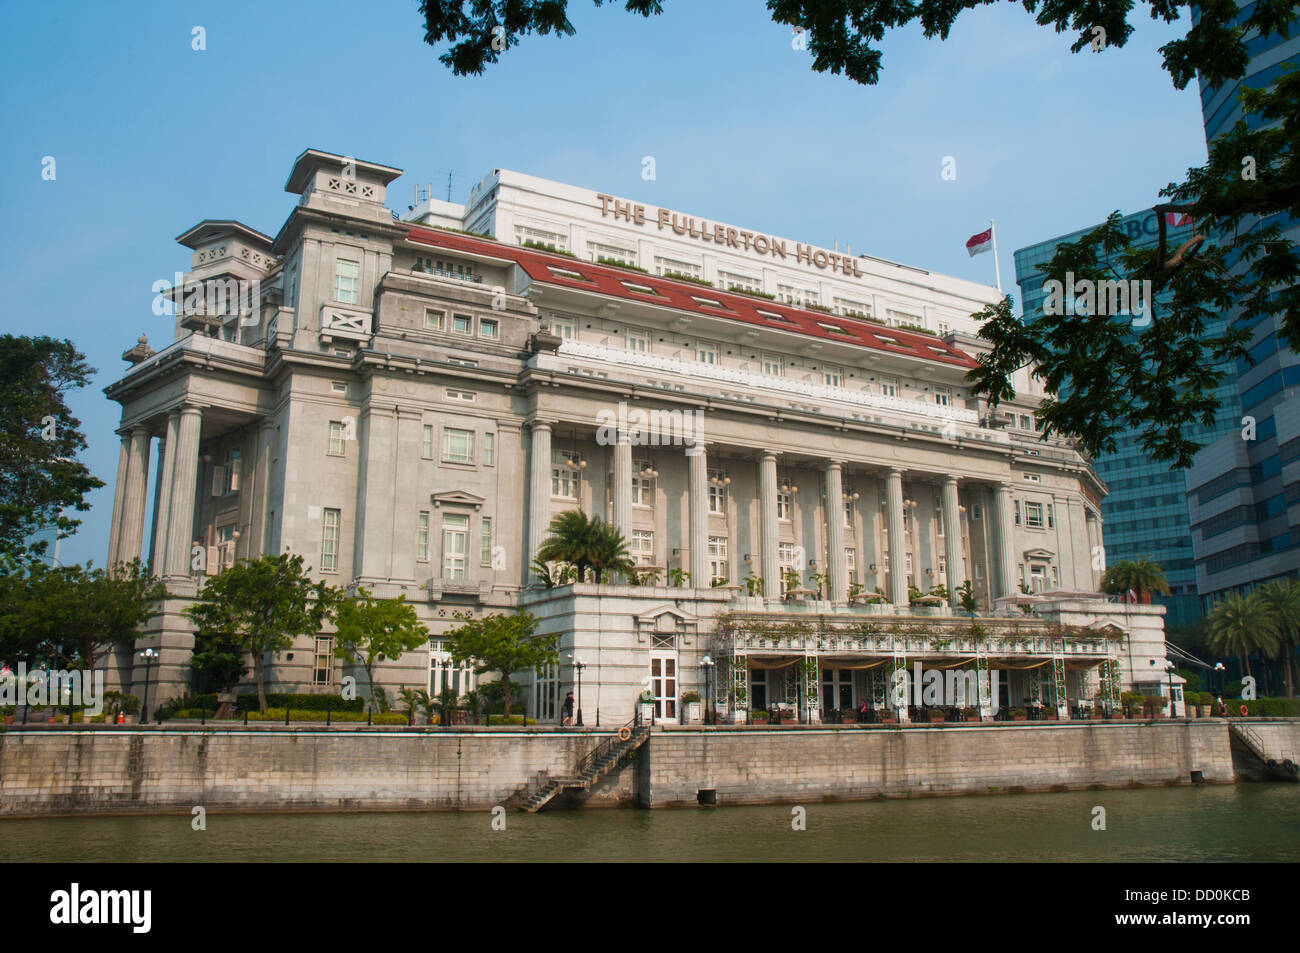 Stock photo the fullerton hotel in the former general post office building singapore